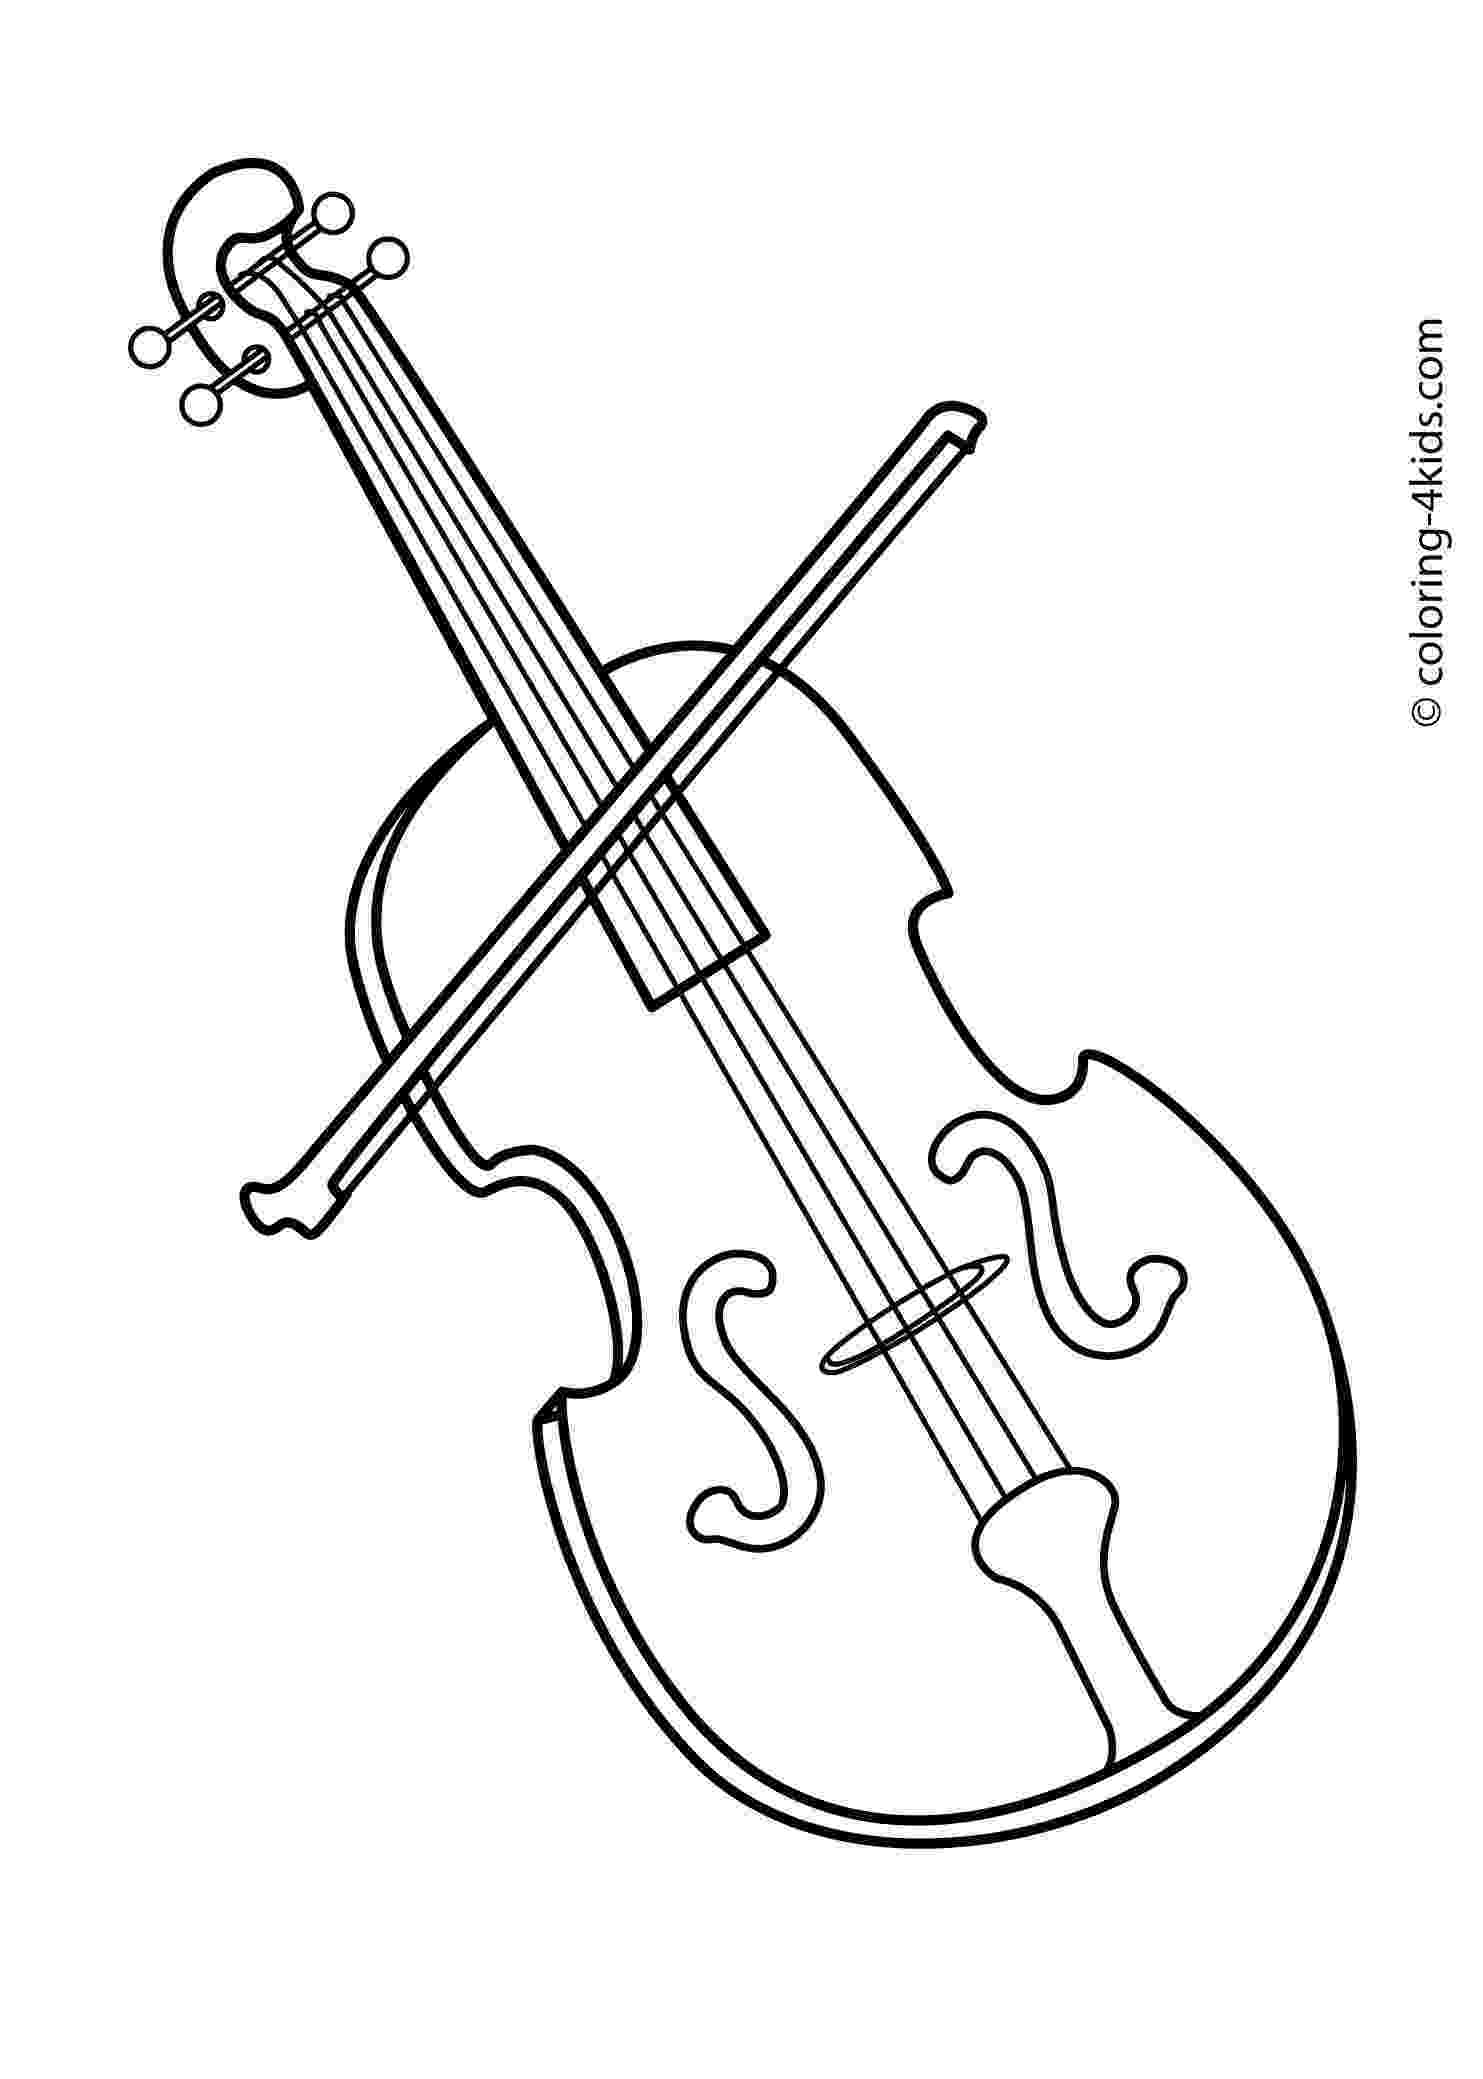 coloring pages violin music letmecolor pages coloring violin